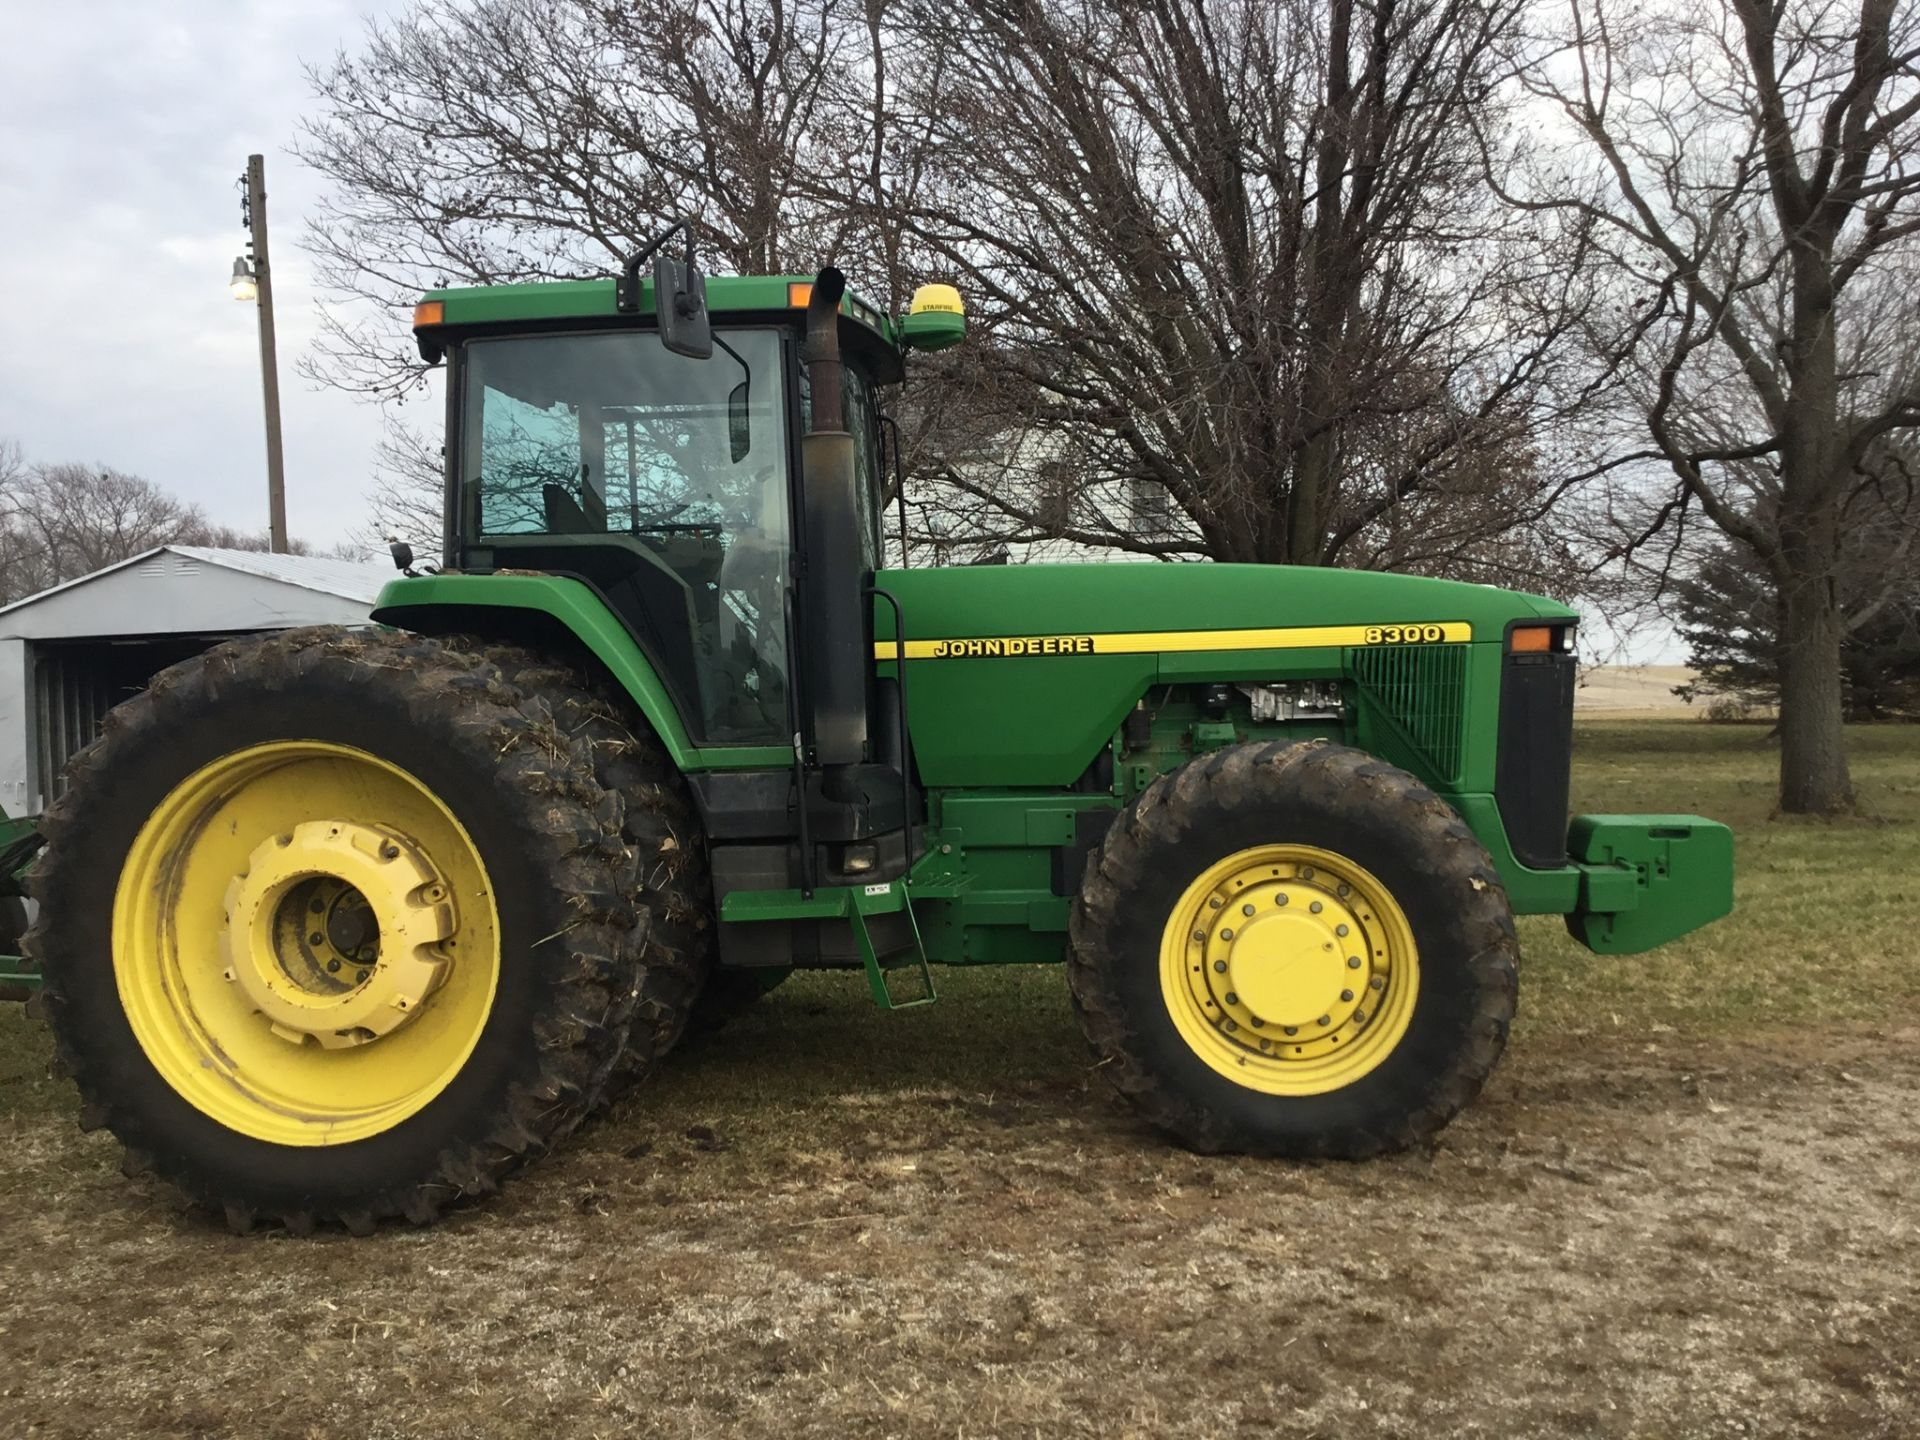 1997 John Deere 8300 MFWD, Power Shift, 3 Hydraulic Remotes, 3 Pt., Quick Hitch, PTO, Green Star - Image 15 of 25